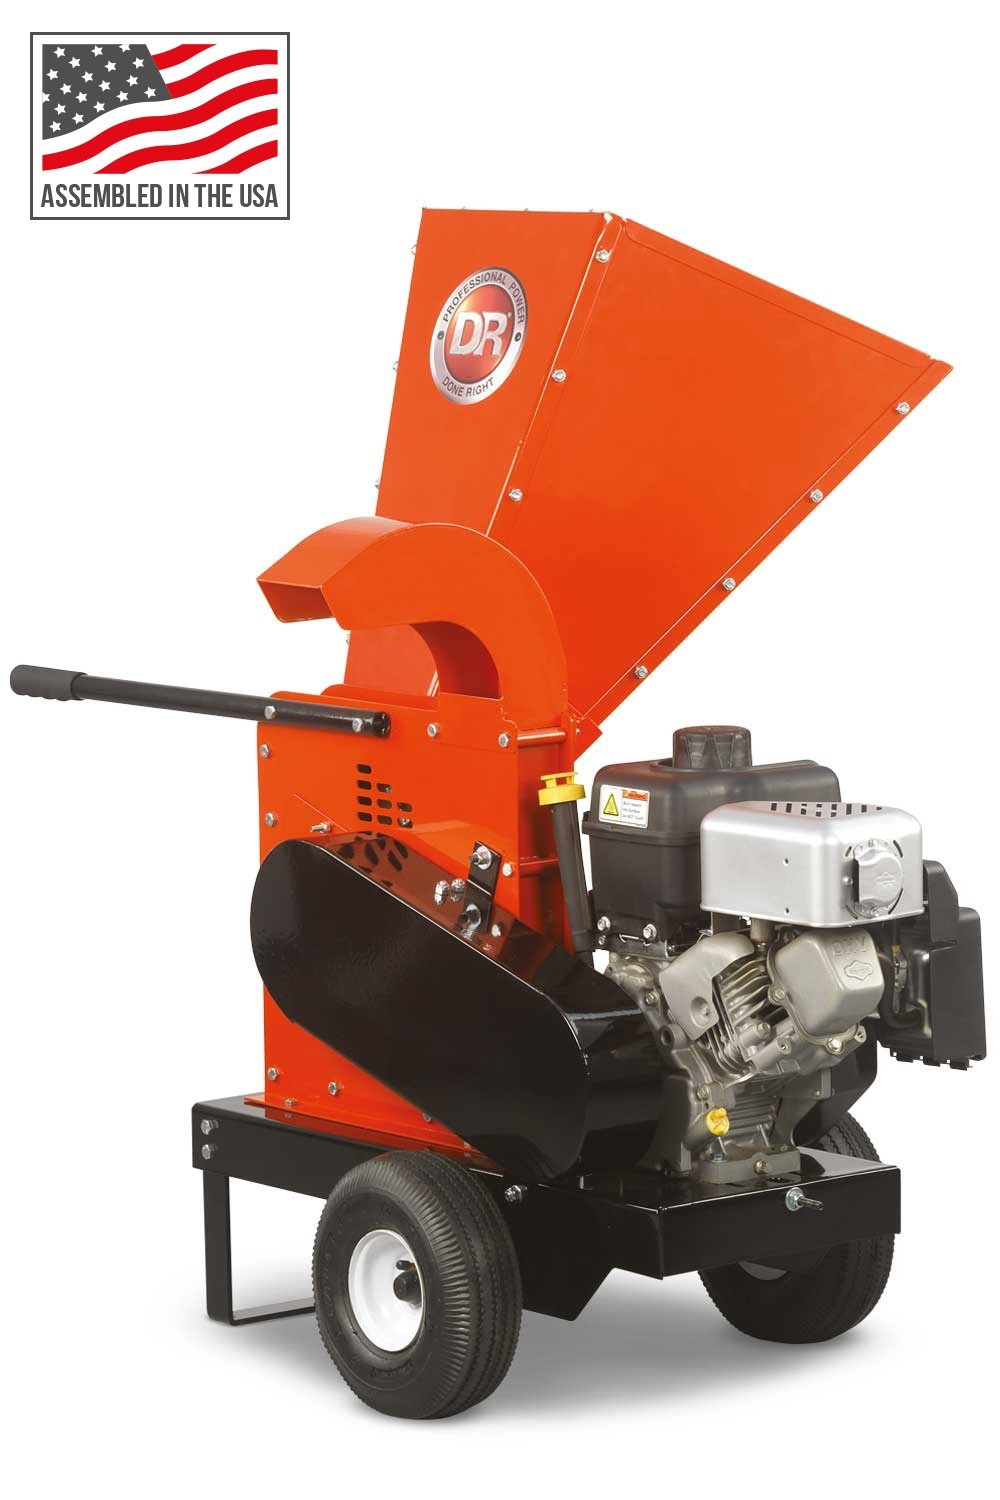 DR 11.5 Wood Chipper Recoil Start